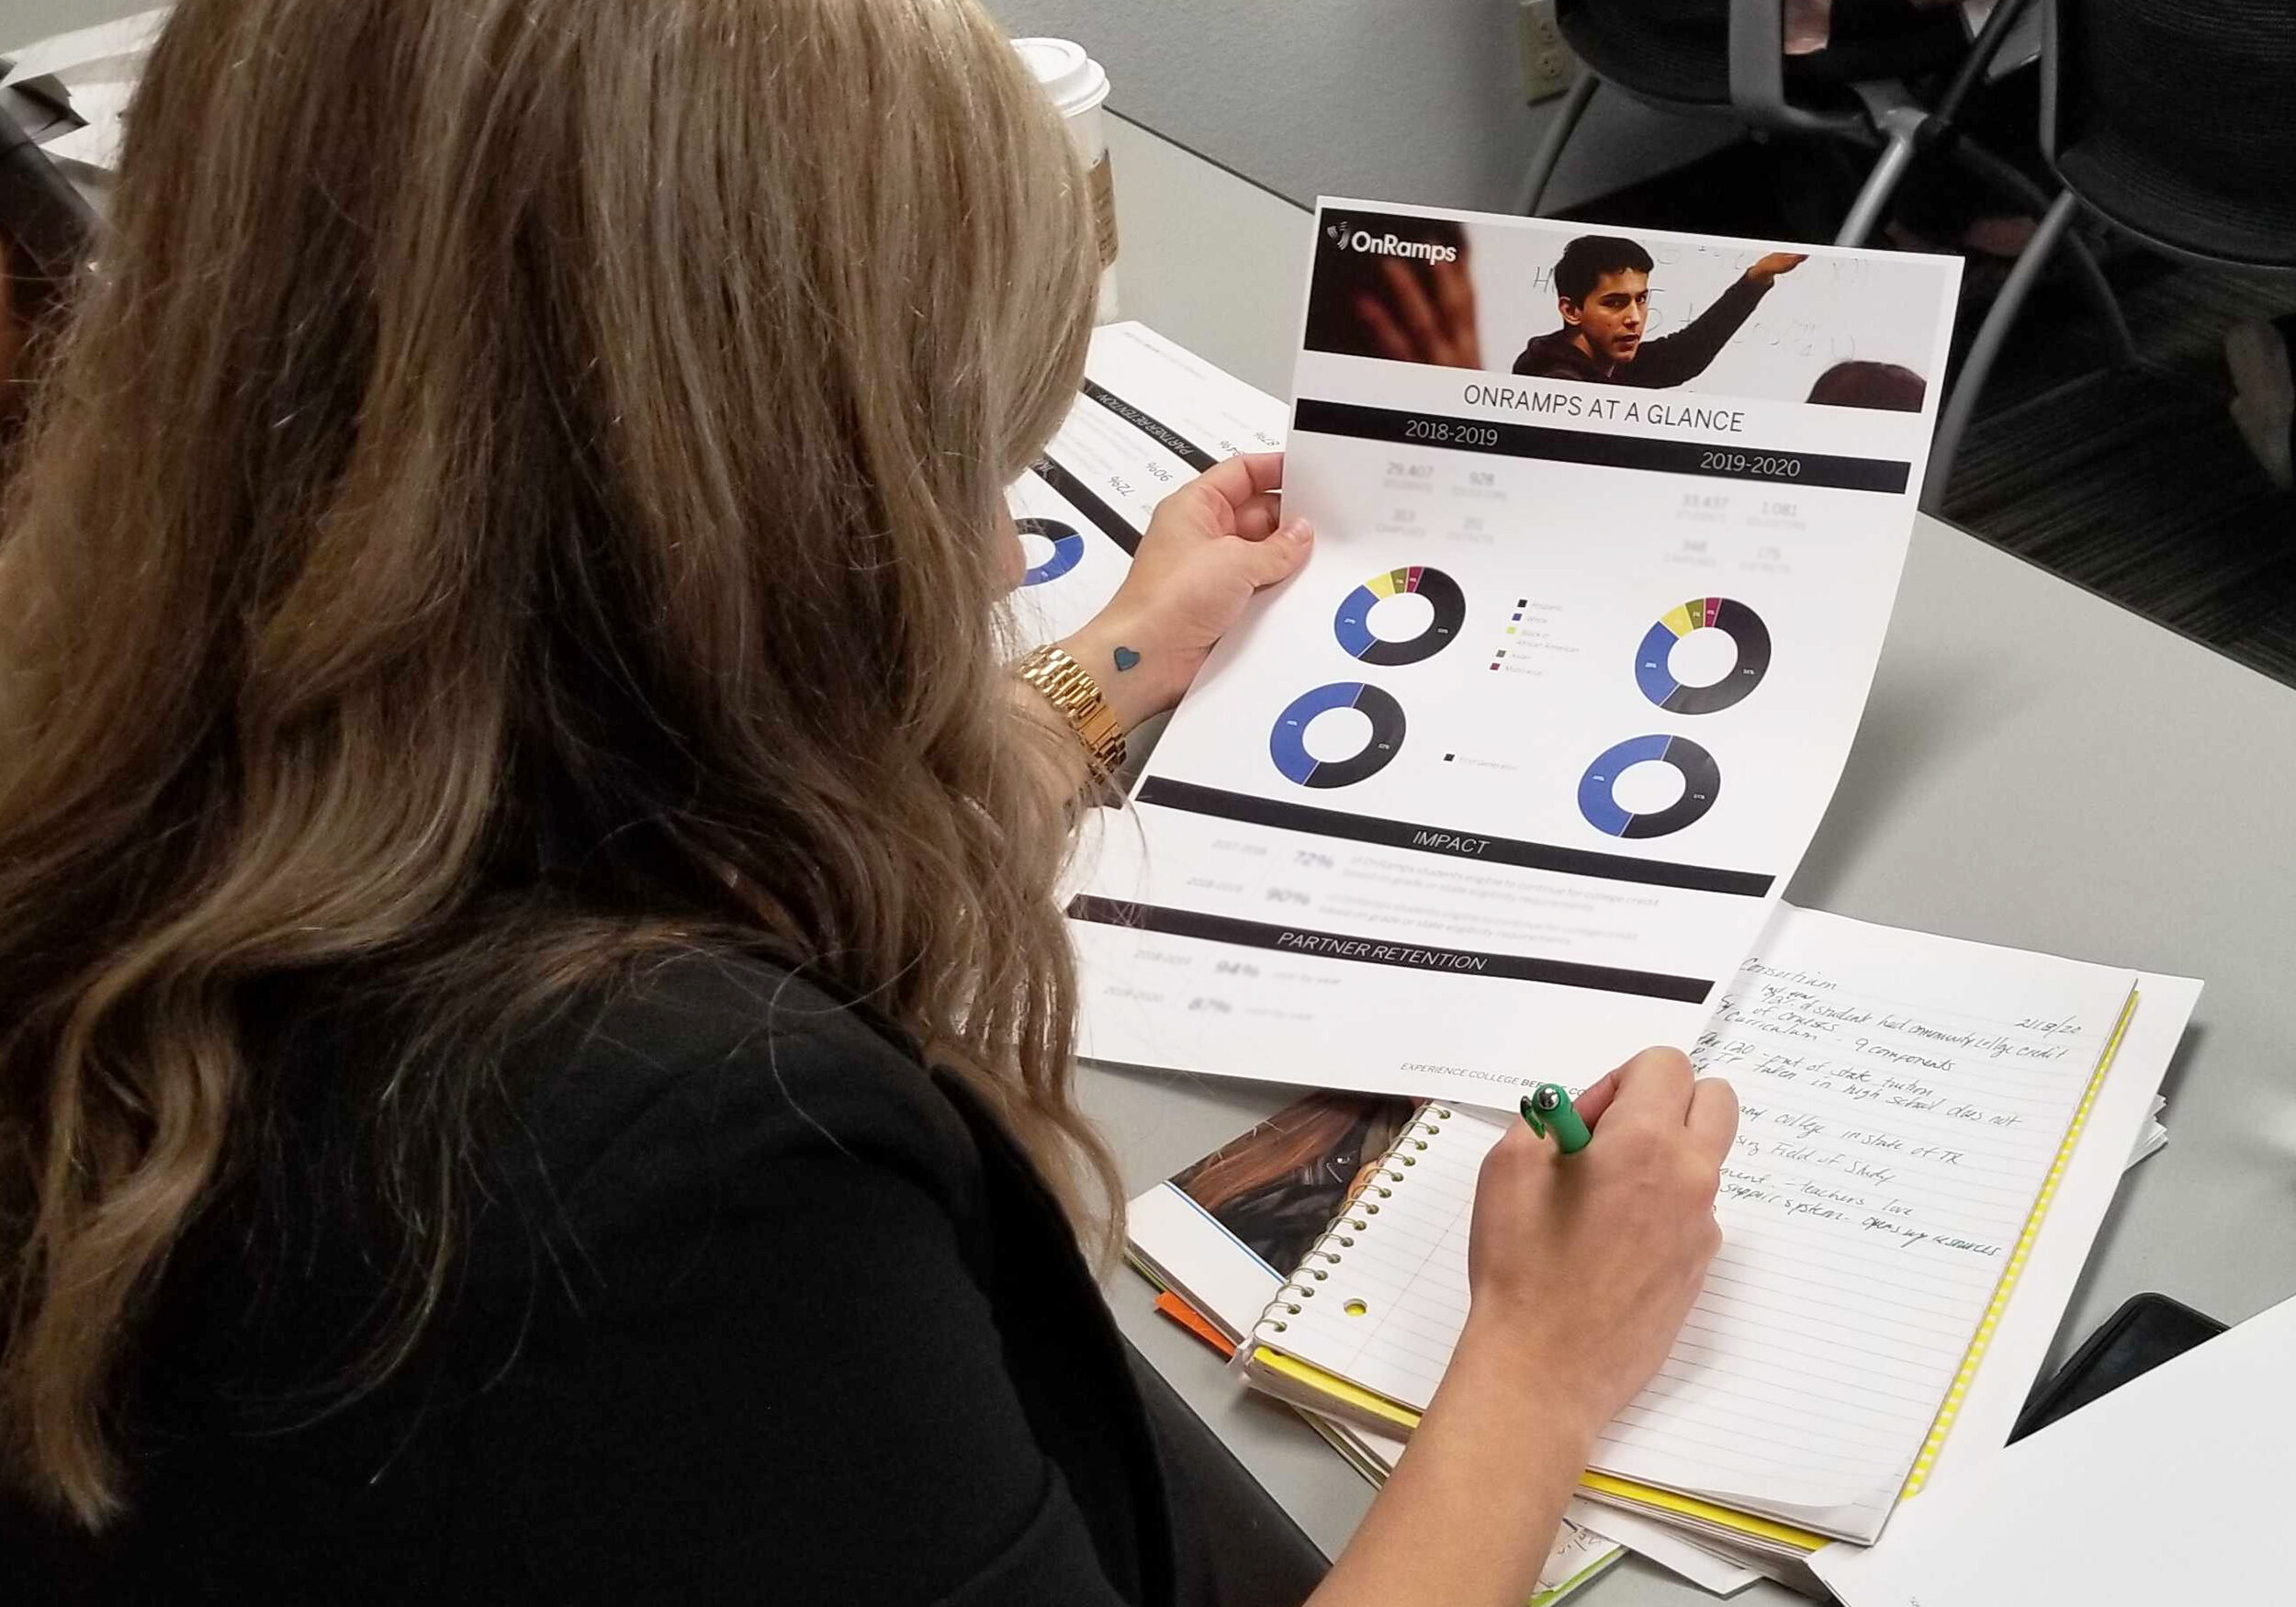 woman looking at a OnRamps pie chart and writing in a notebook.